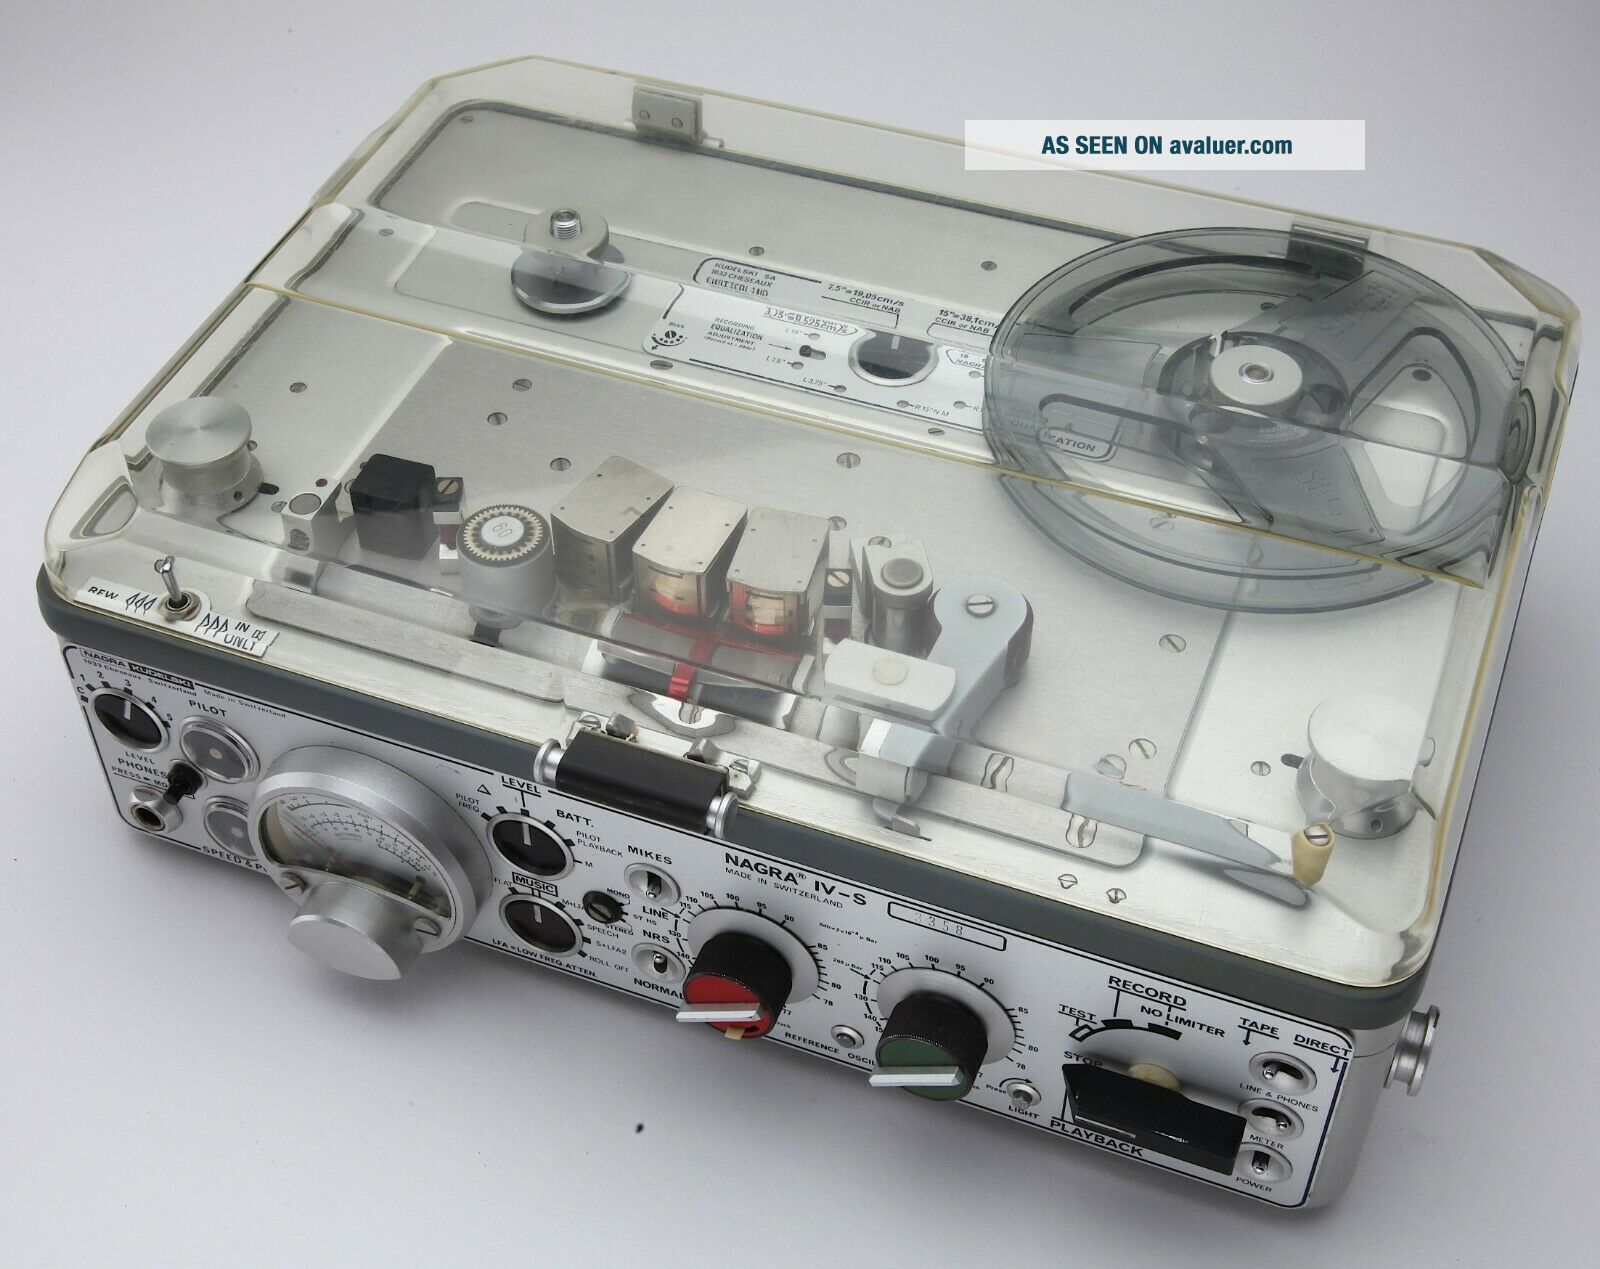 Nagra IV - S with many accessories (ATN2,  manuals,  etc. )